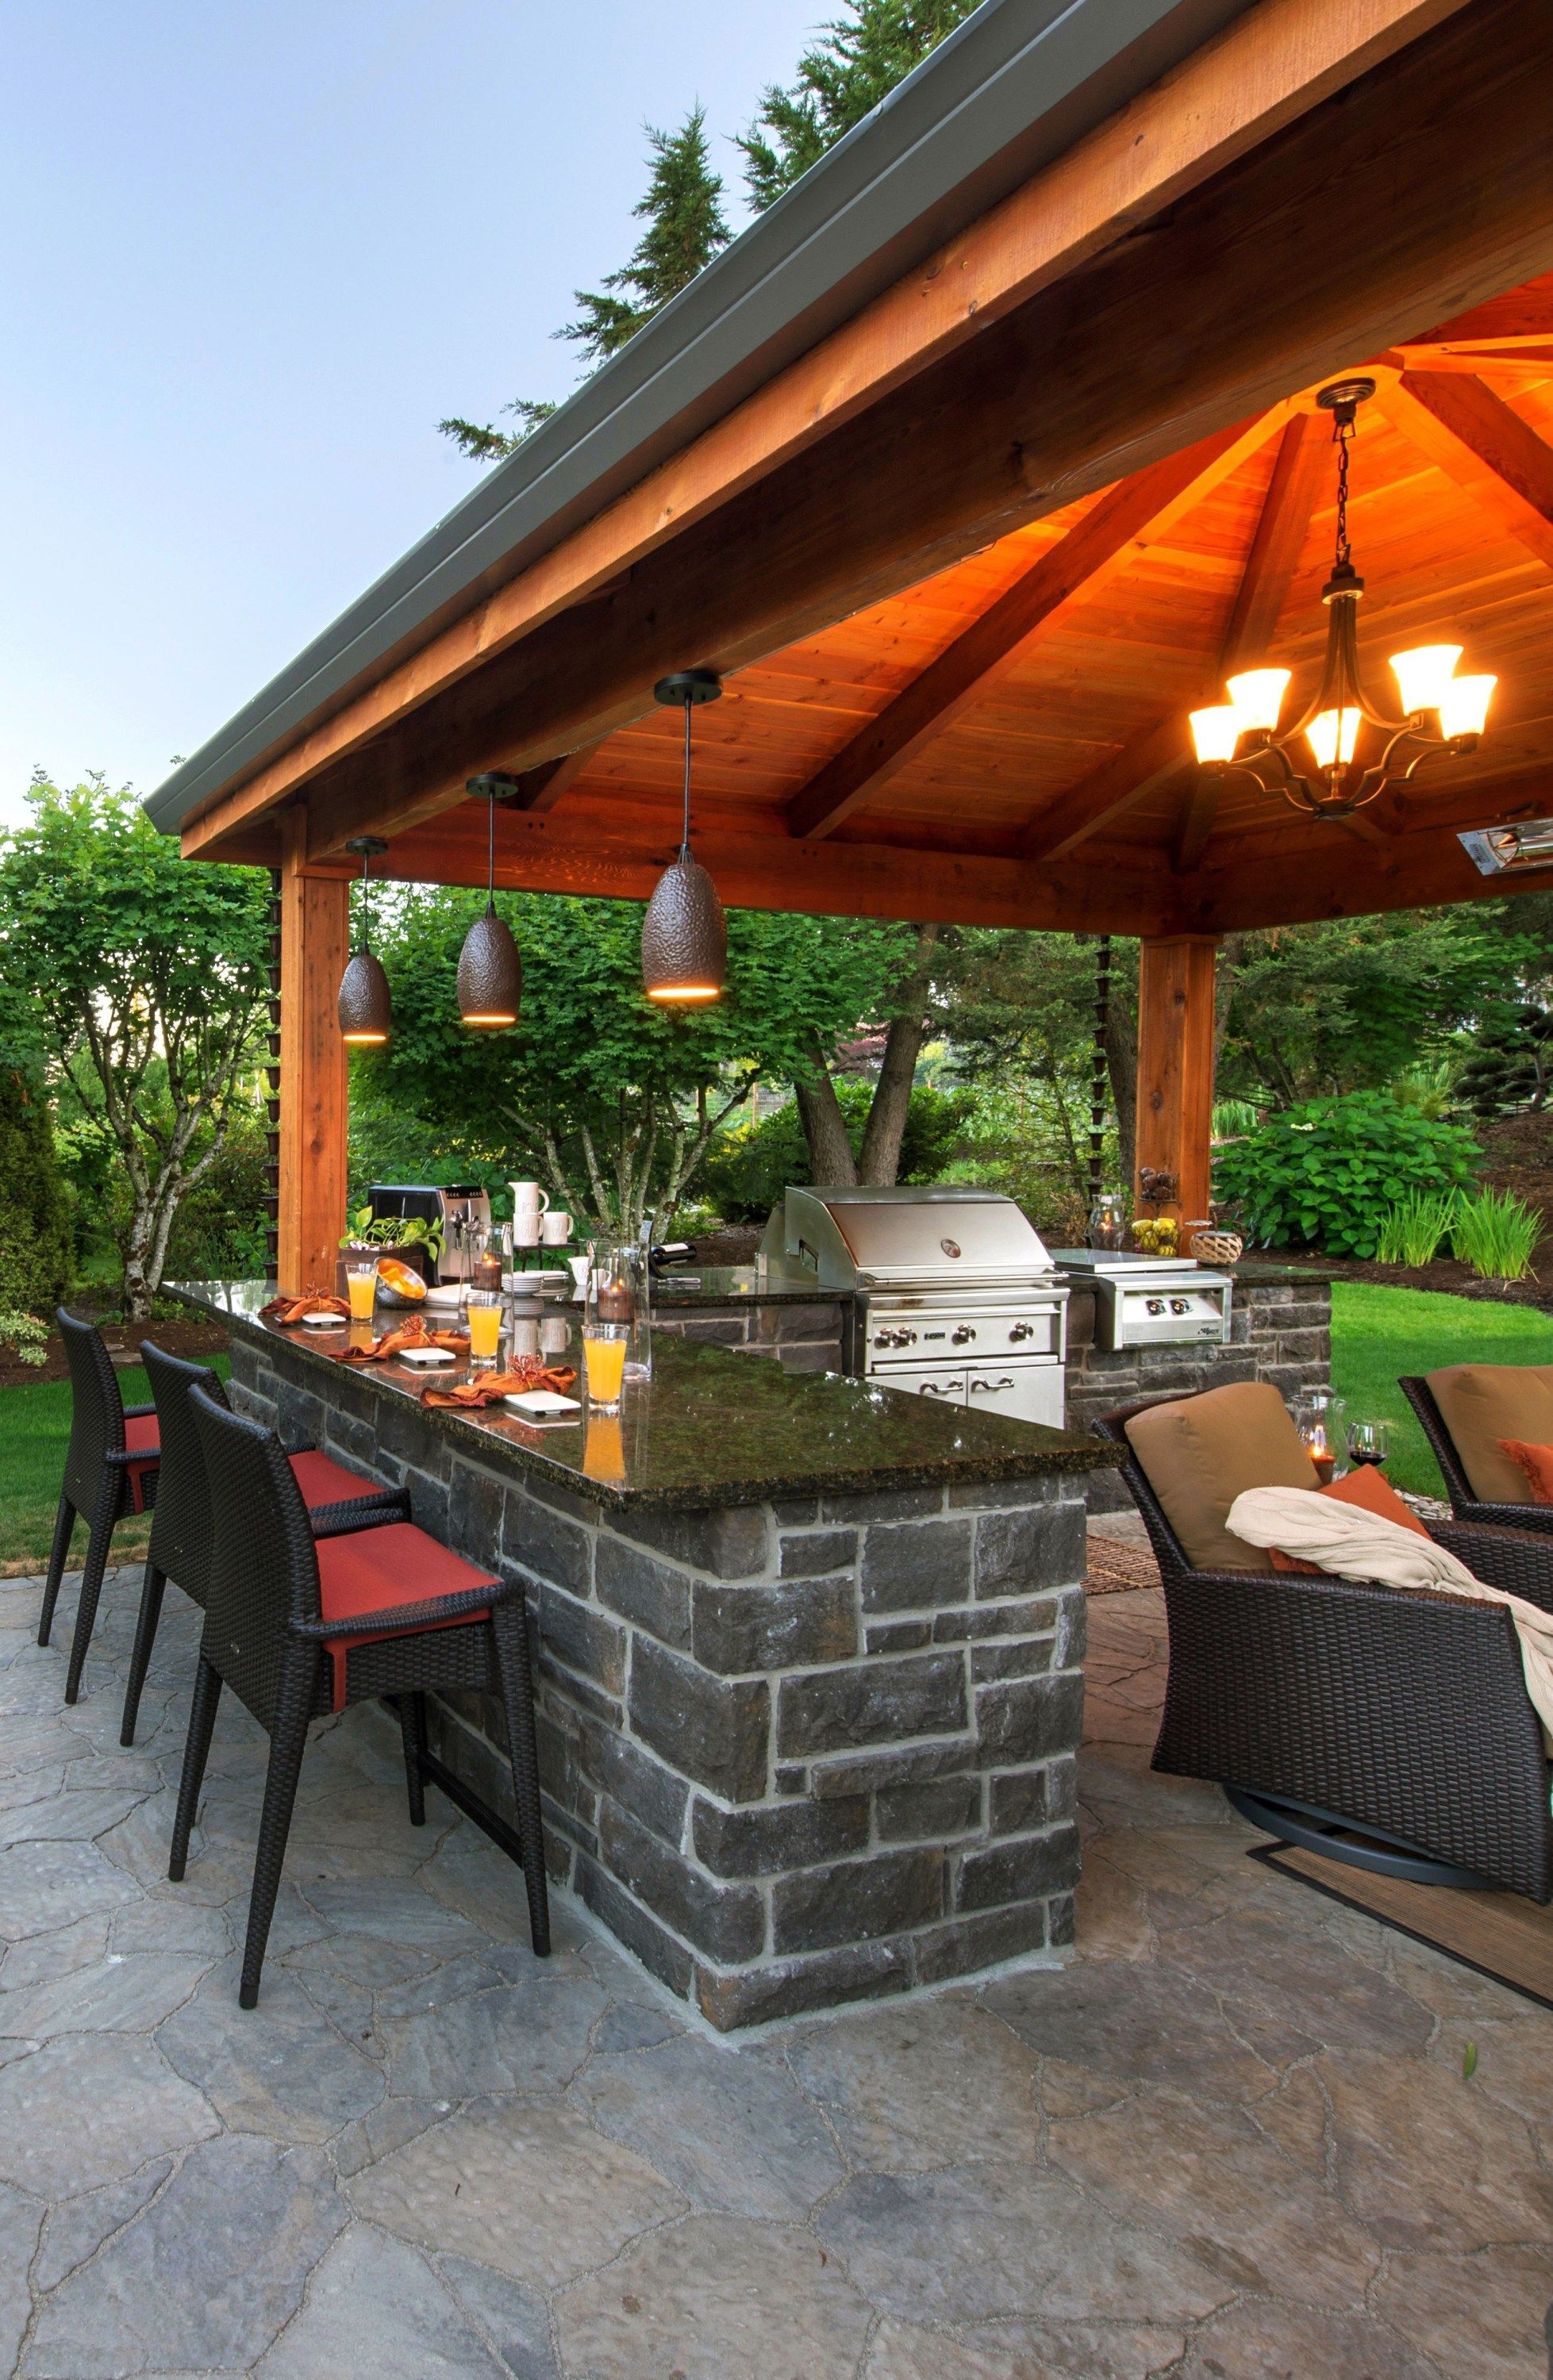 Best outdoor bar ideas for winter ready outdoor spaces